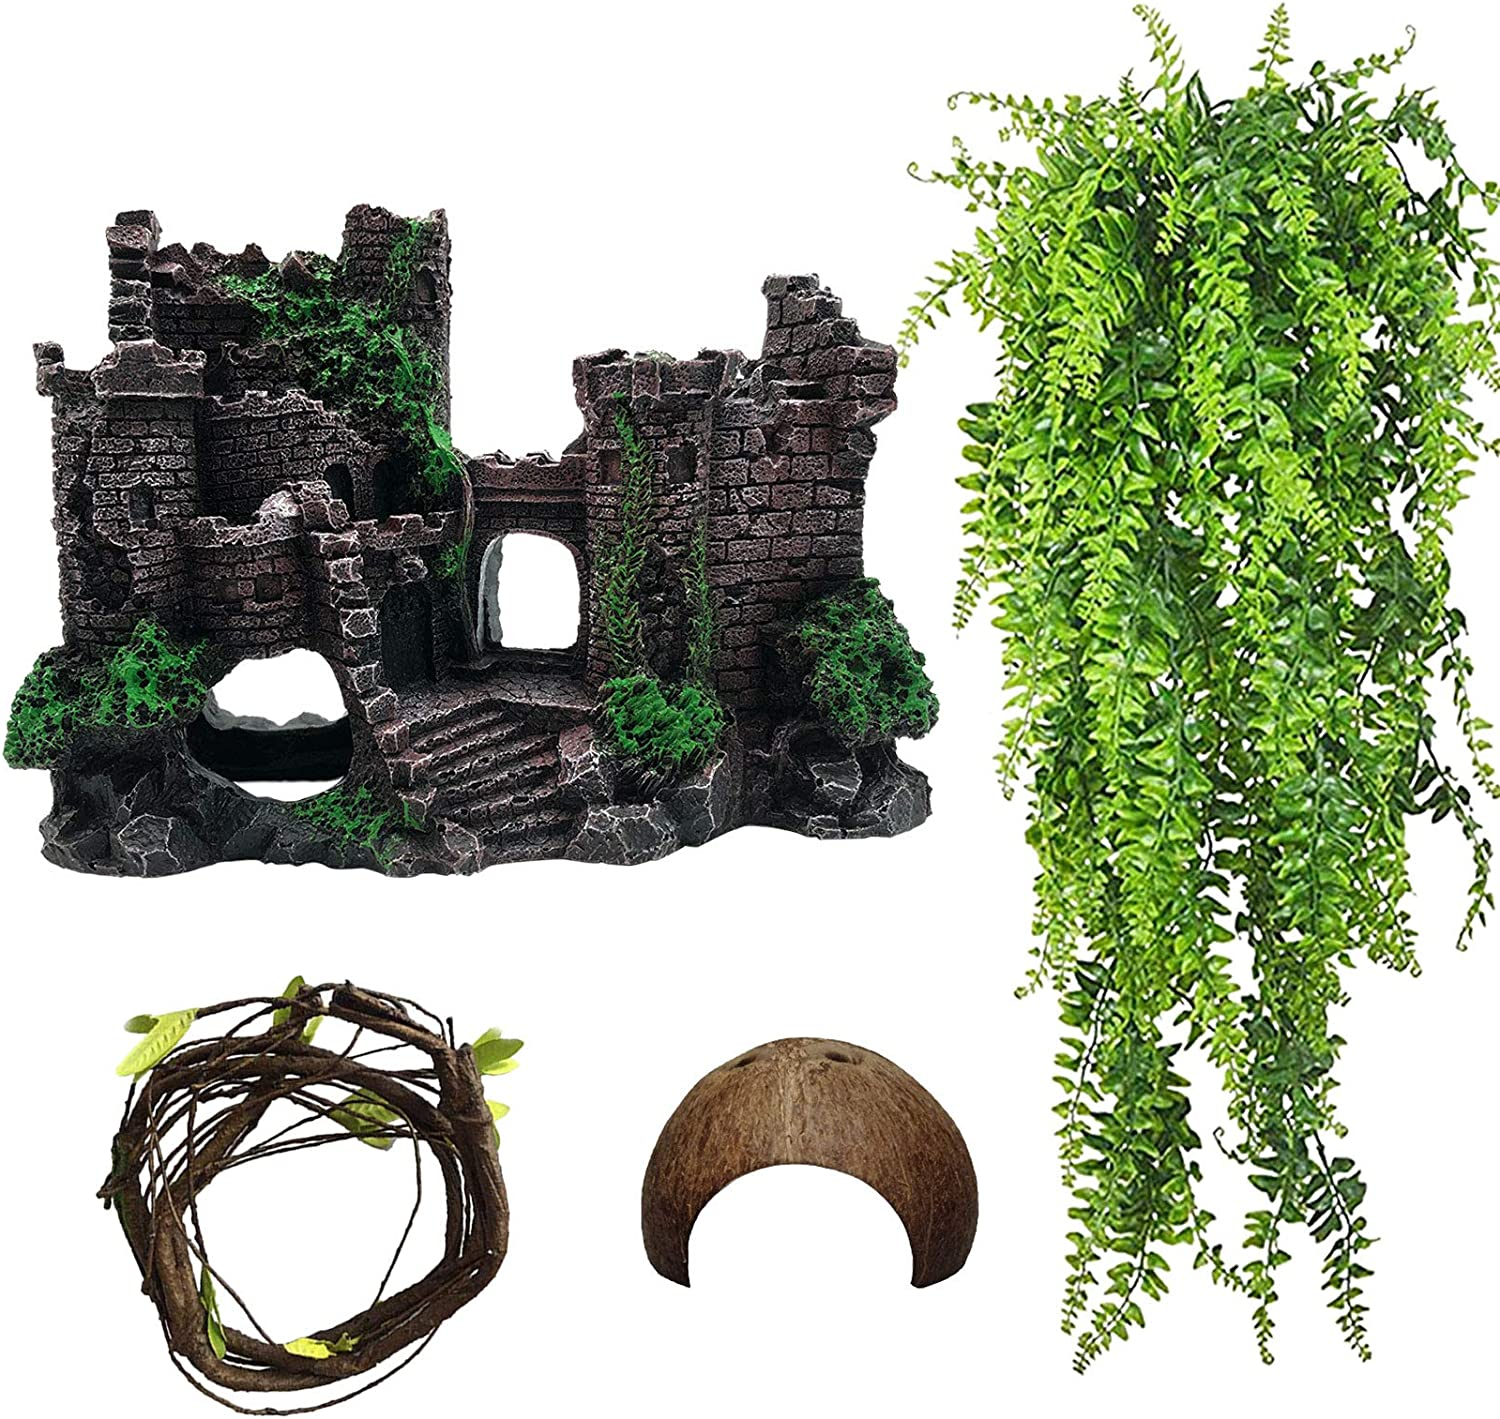 Tfwadmx Resin Classical Castle Reptile Habitat Decorations Lizard Hideouts Cave Coconut Shell Hut Realistic Details Ornament Aquarium Accessories for Bearded Dragons,Snake,Gecko and Hermit Crabs